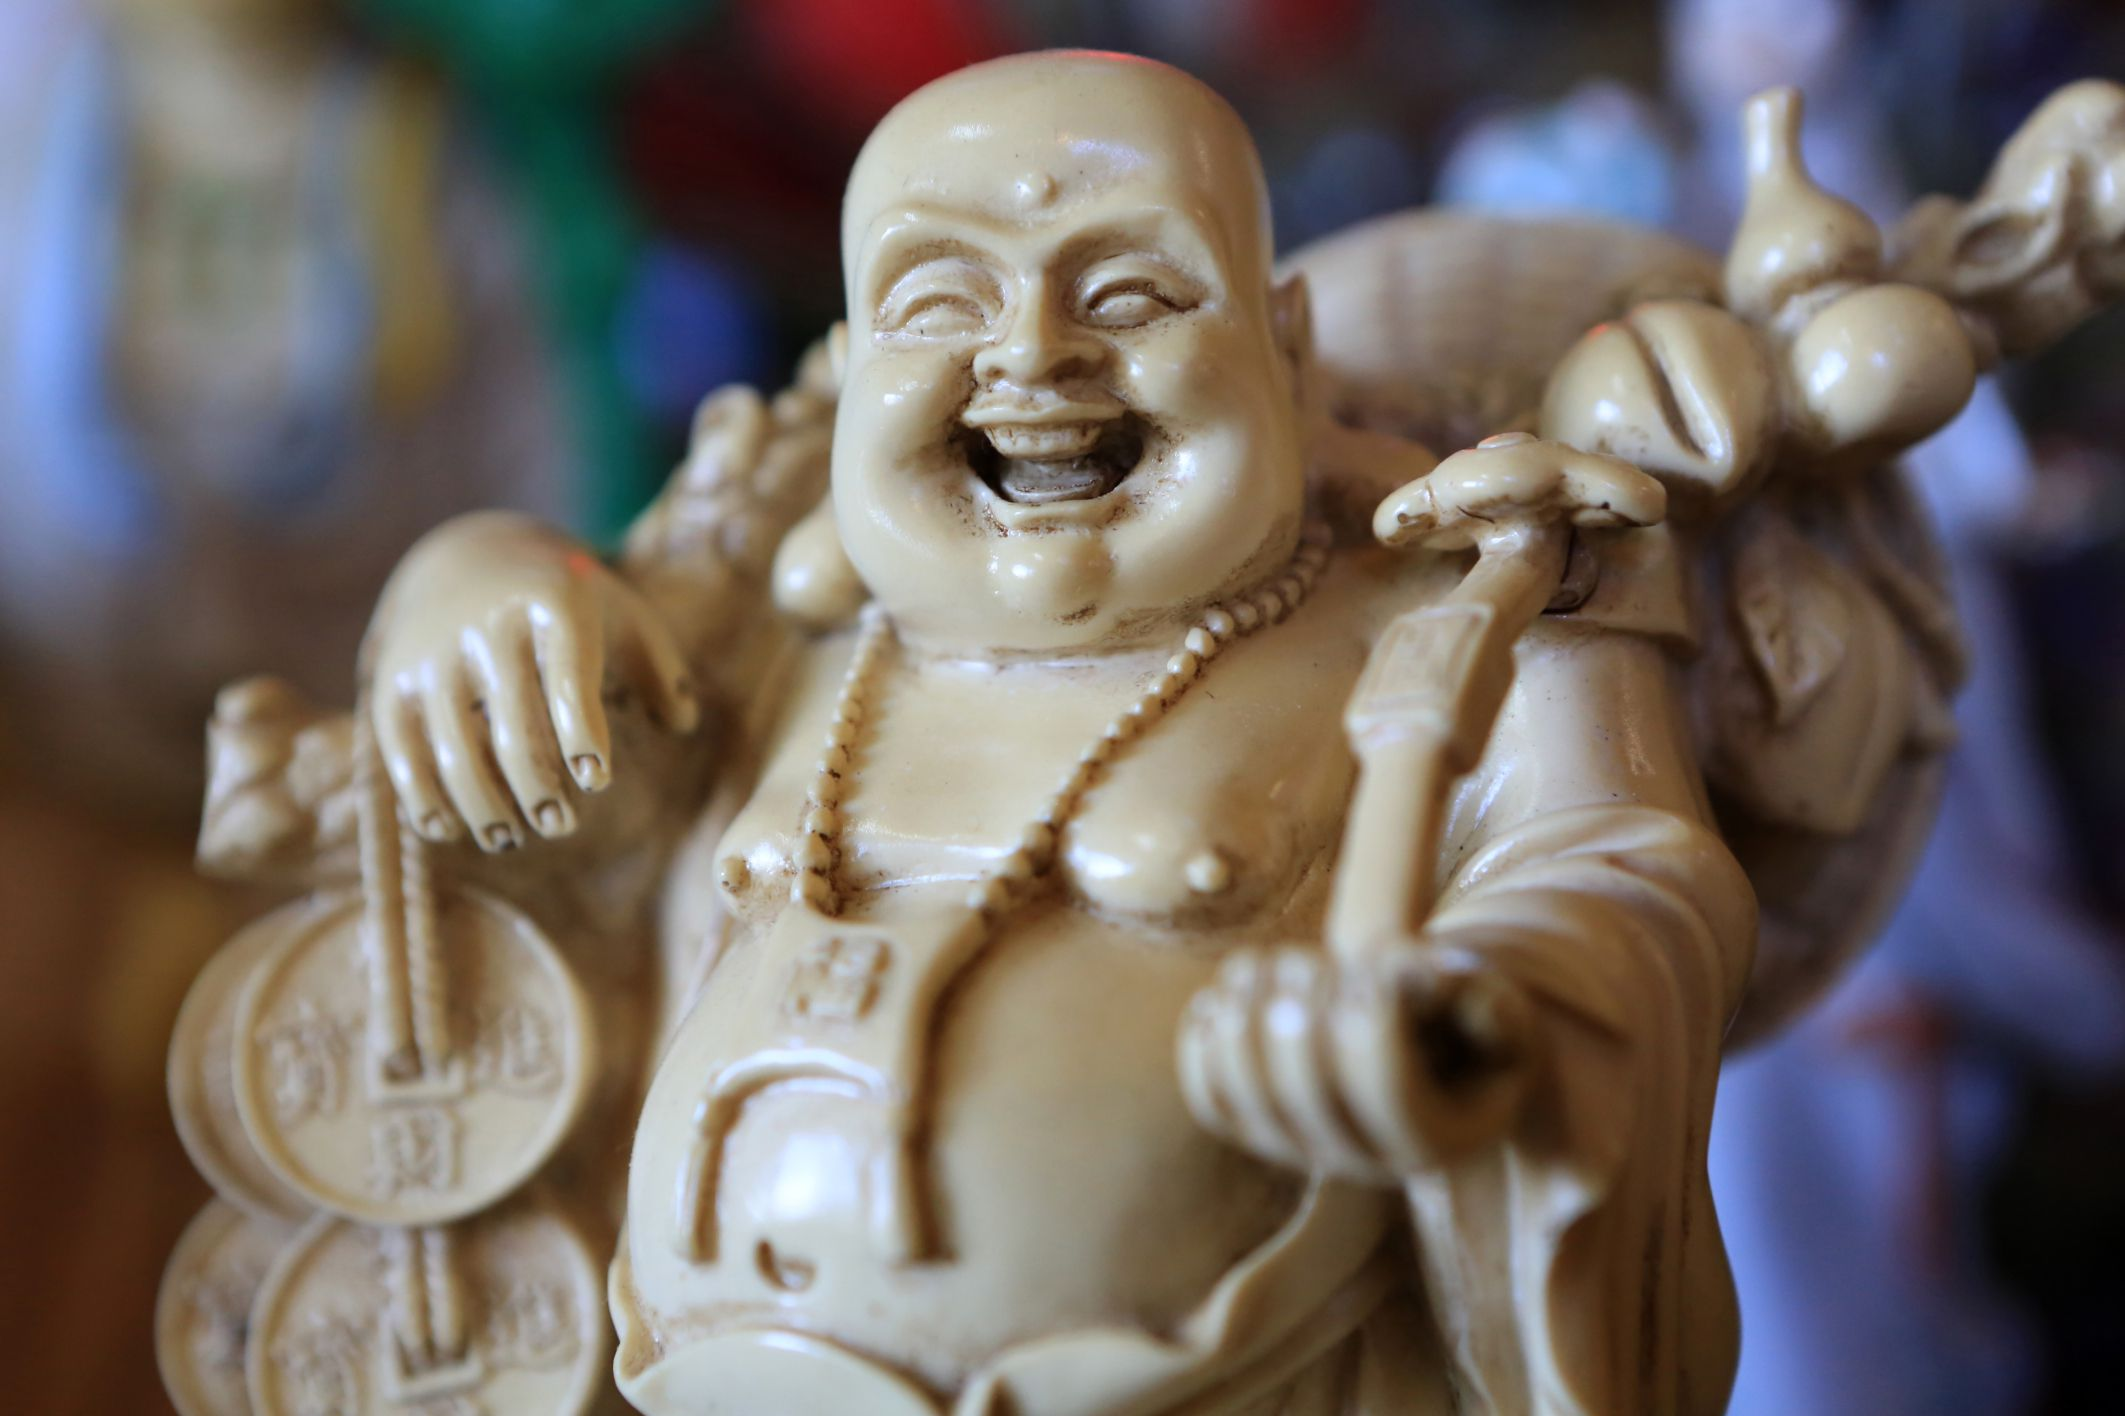 Where Did the Image of the Laughing Buddha Come From?